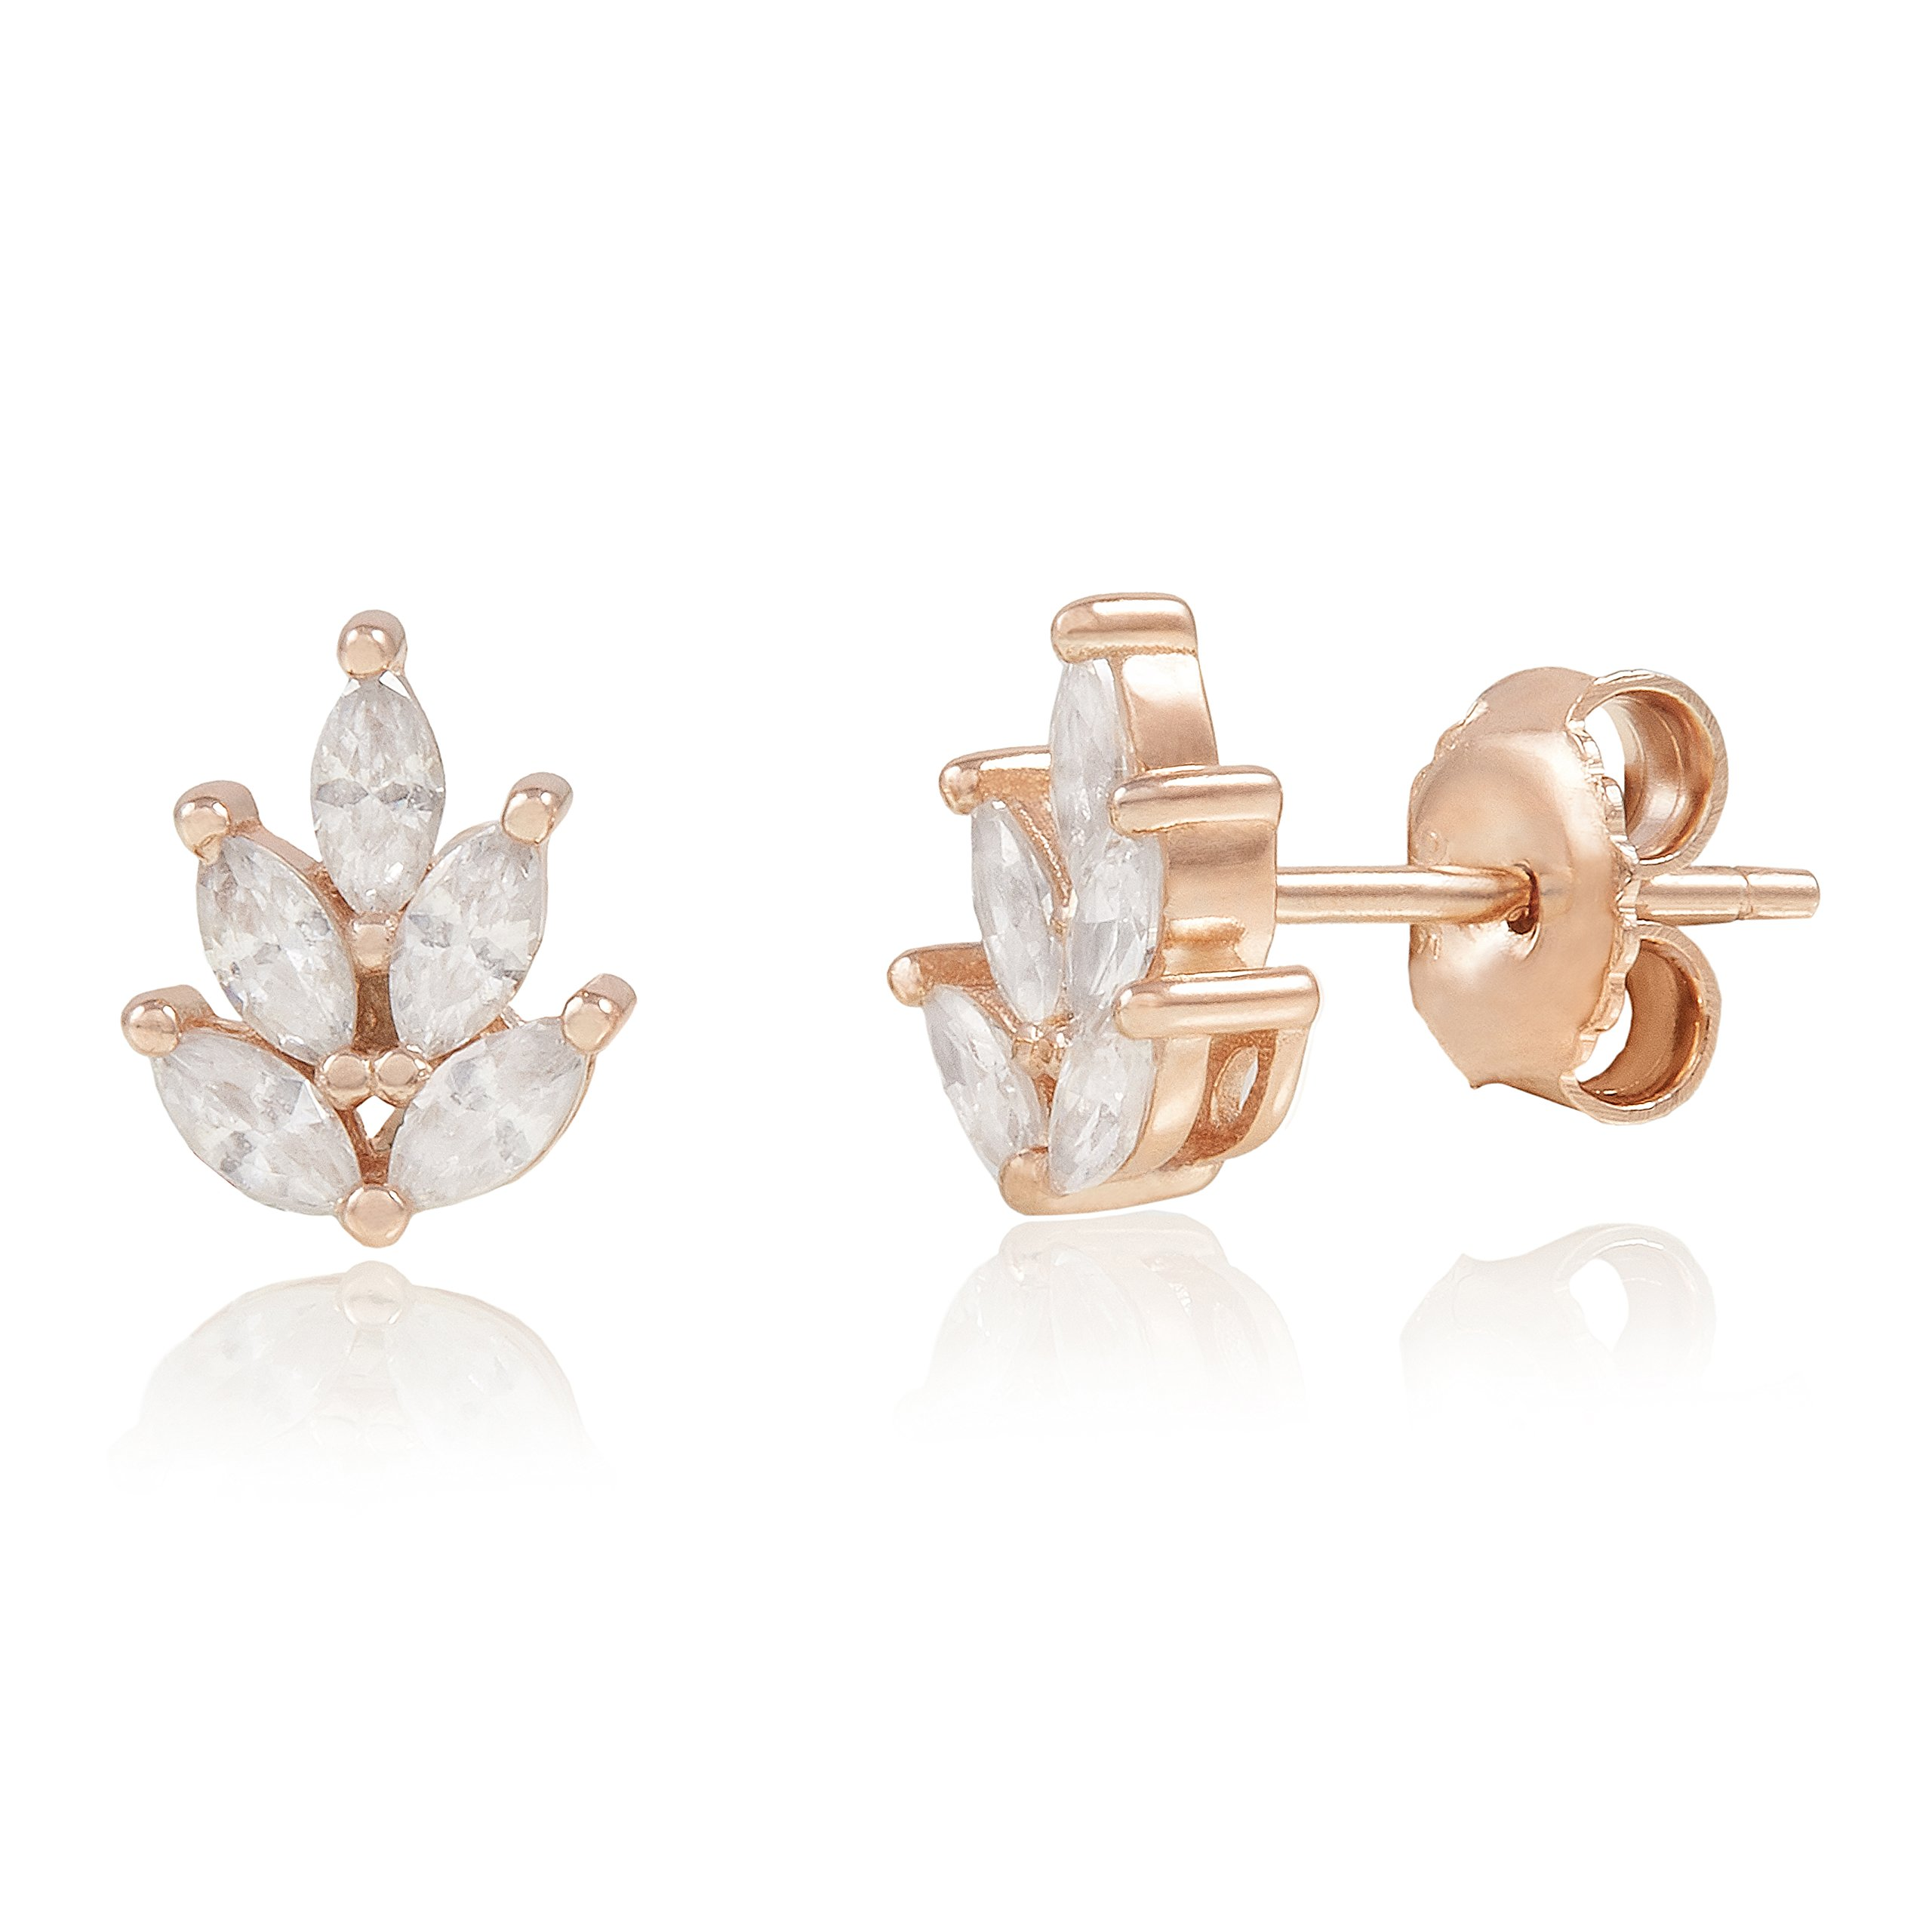 grace studs stud jewellery kiki citrine product earrings mcdonough sloane